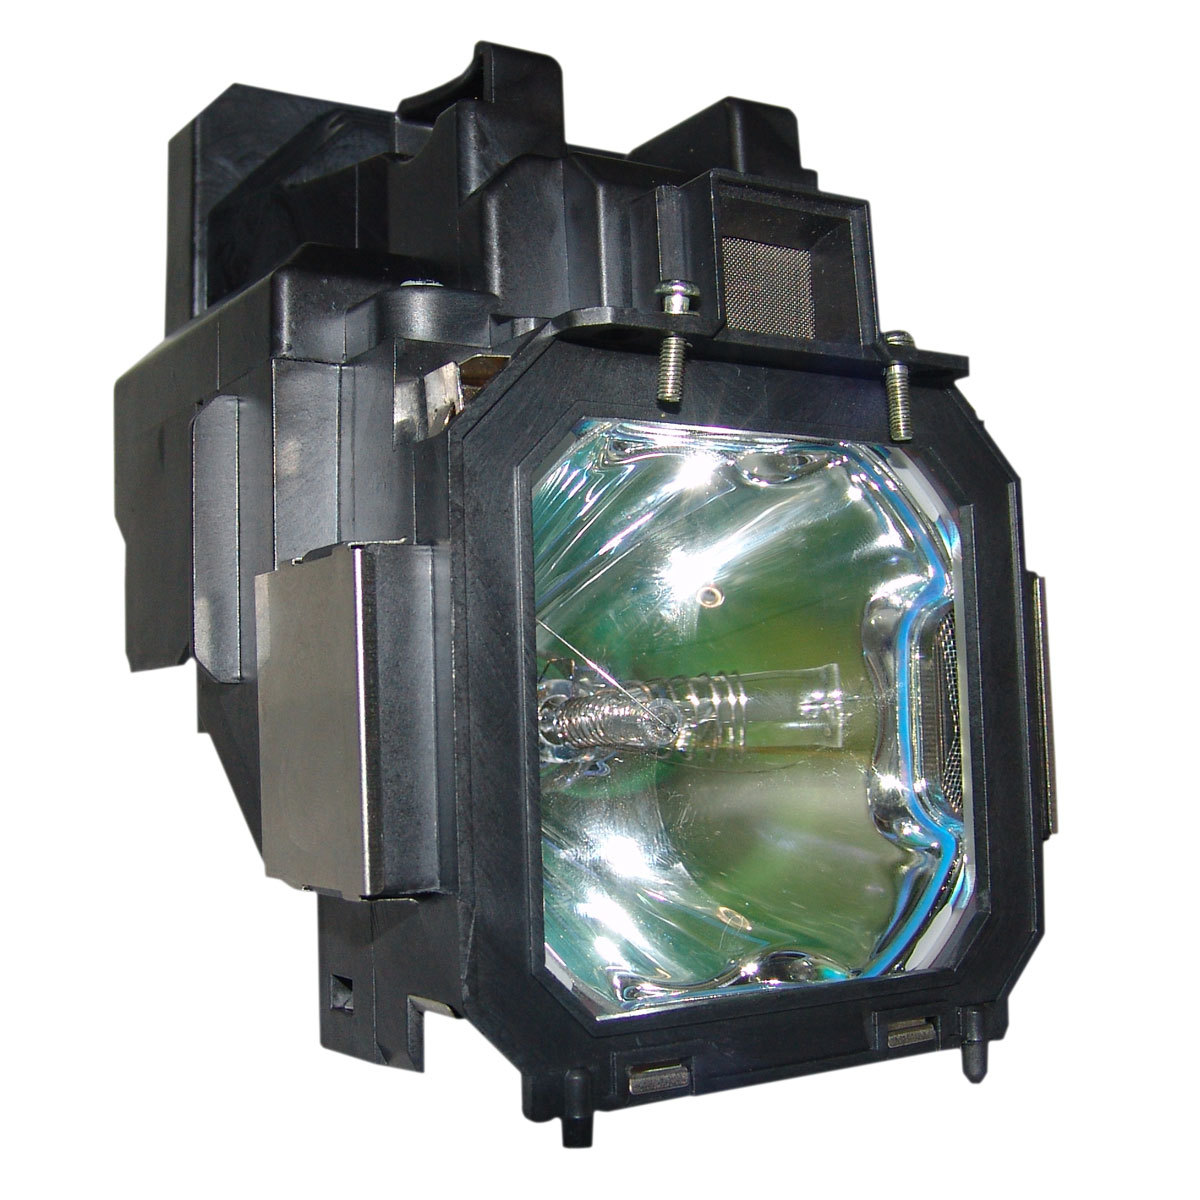 Primary image for Panasonic ET-SLMP105 Philips Projector Lamp Module